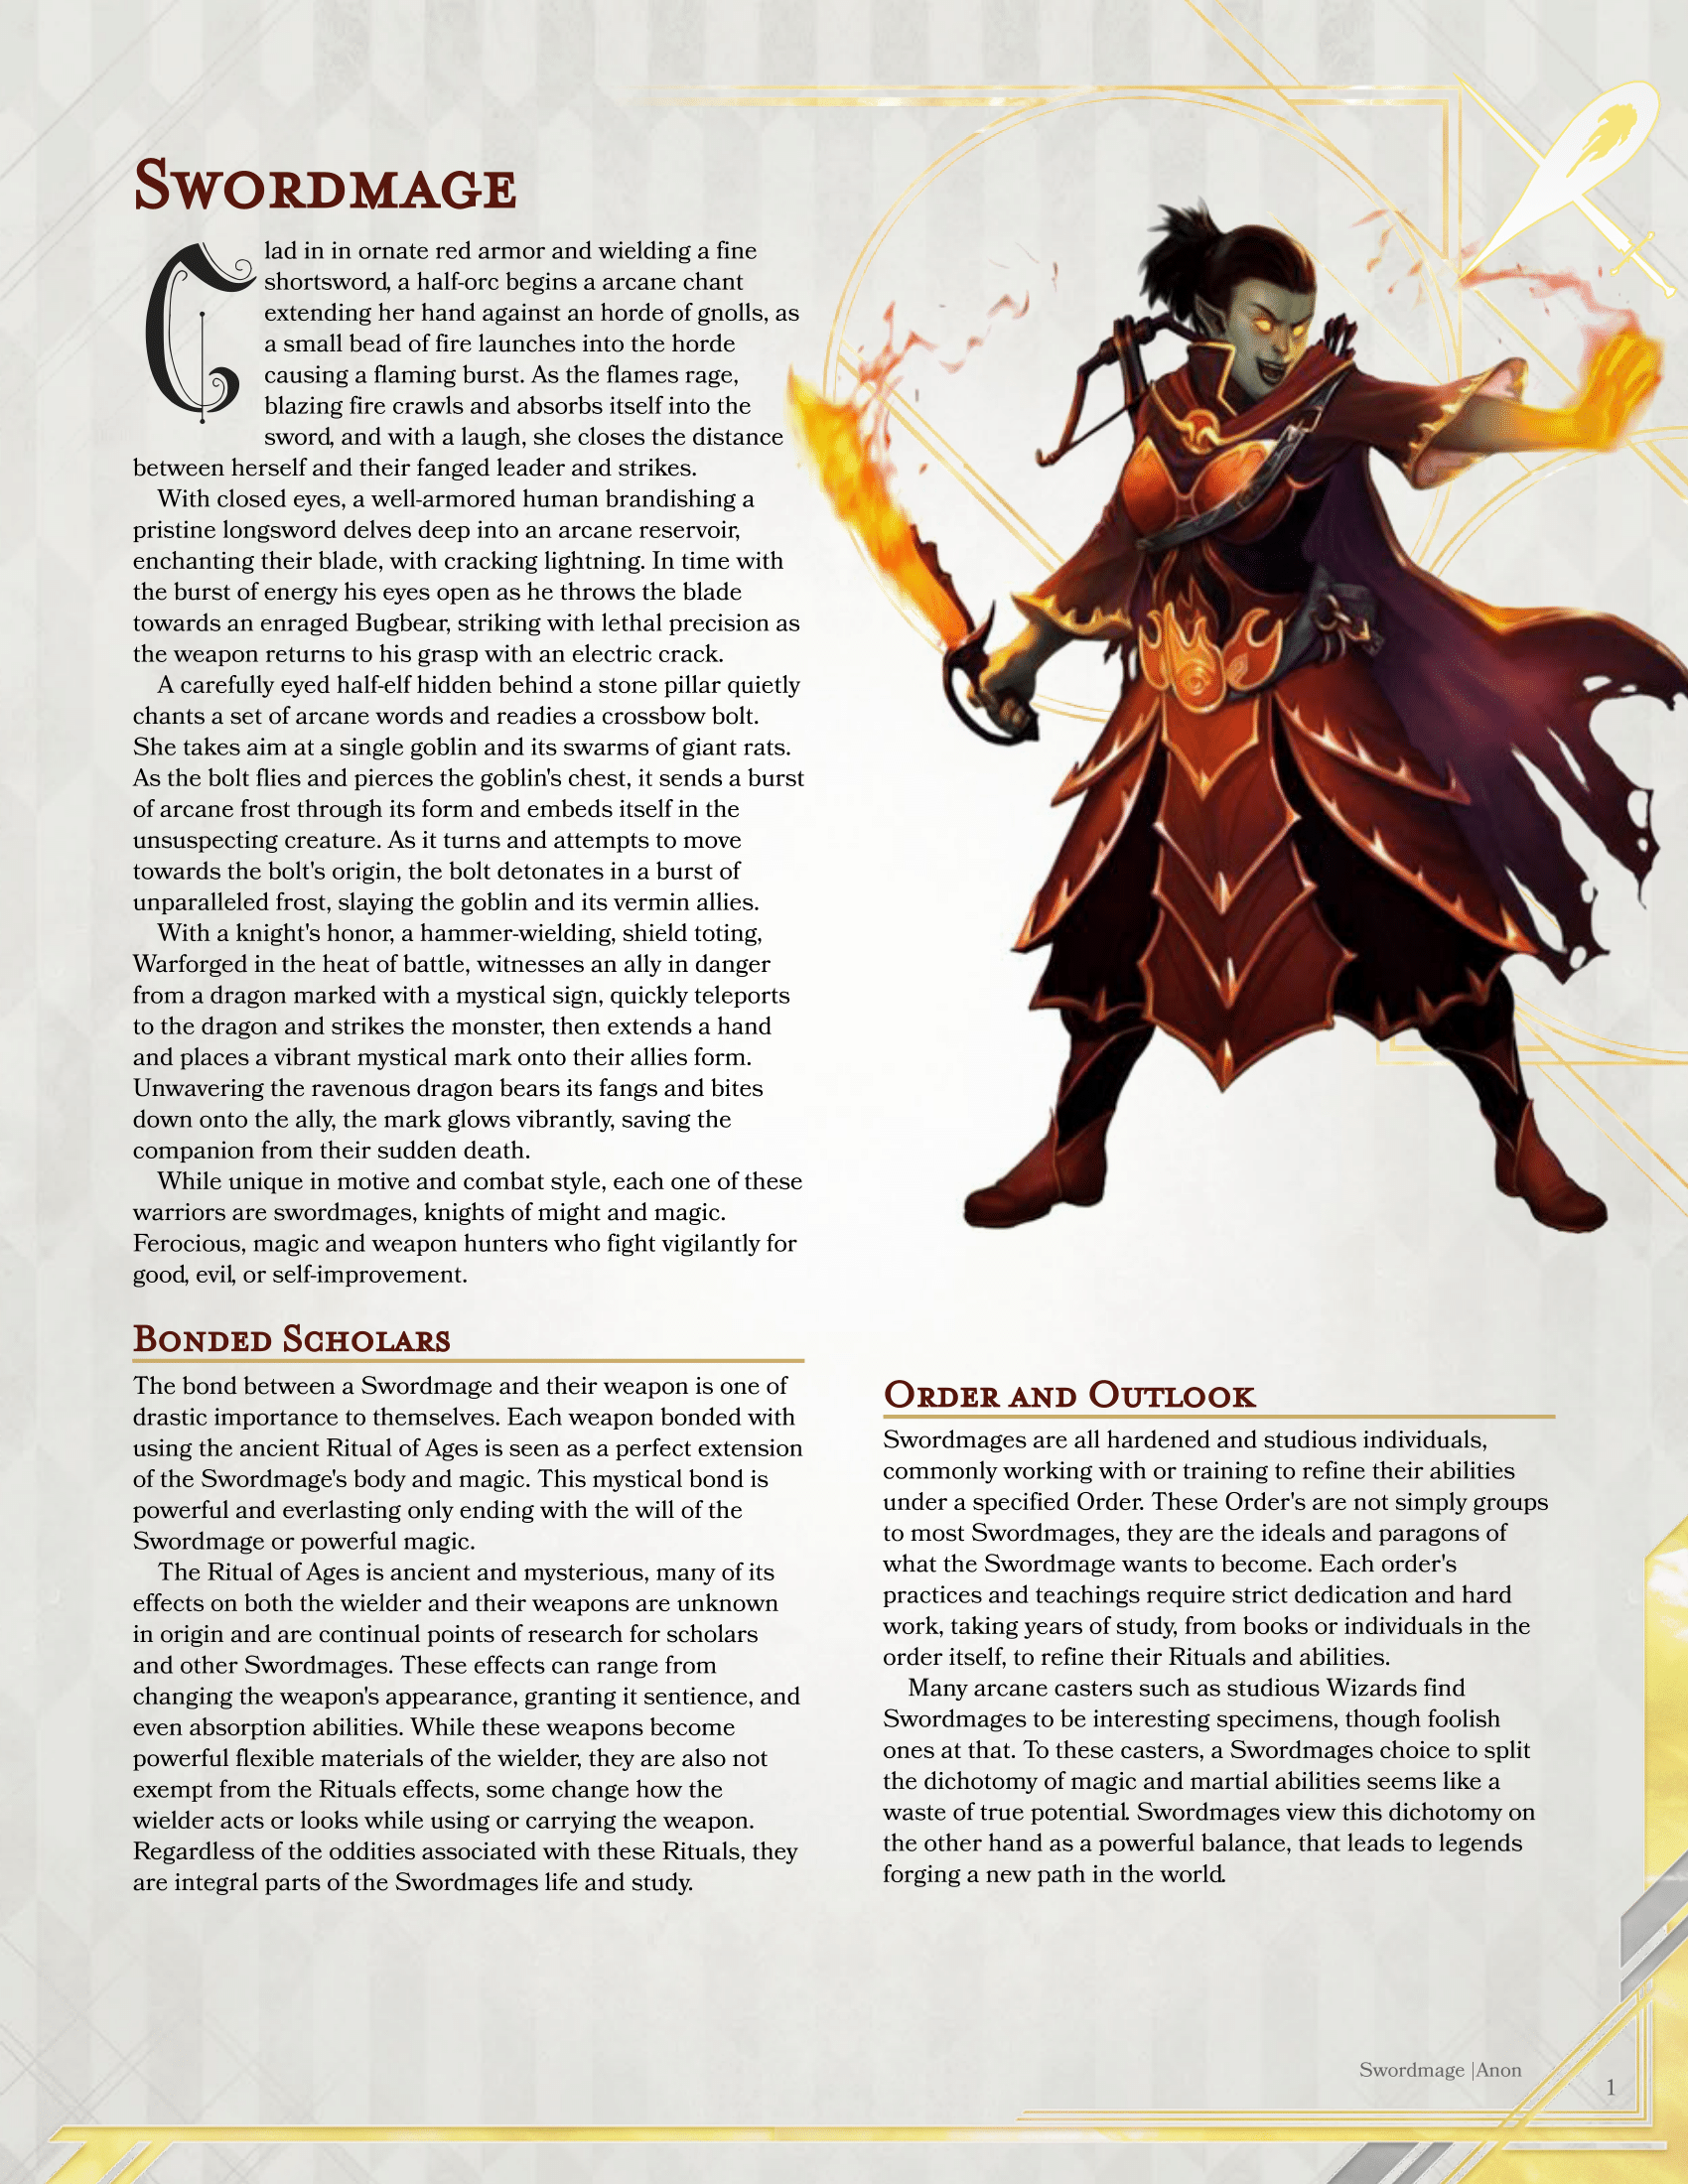 Swordmage 5e homebrew Class for D&D 5e with NPCs and 5